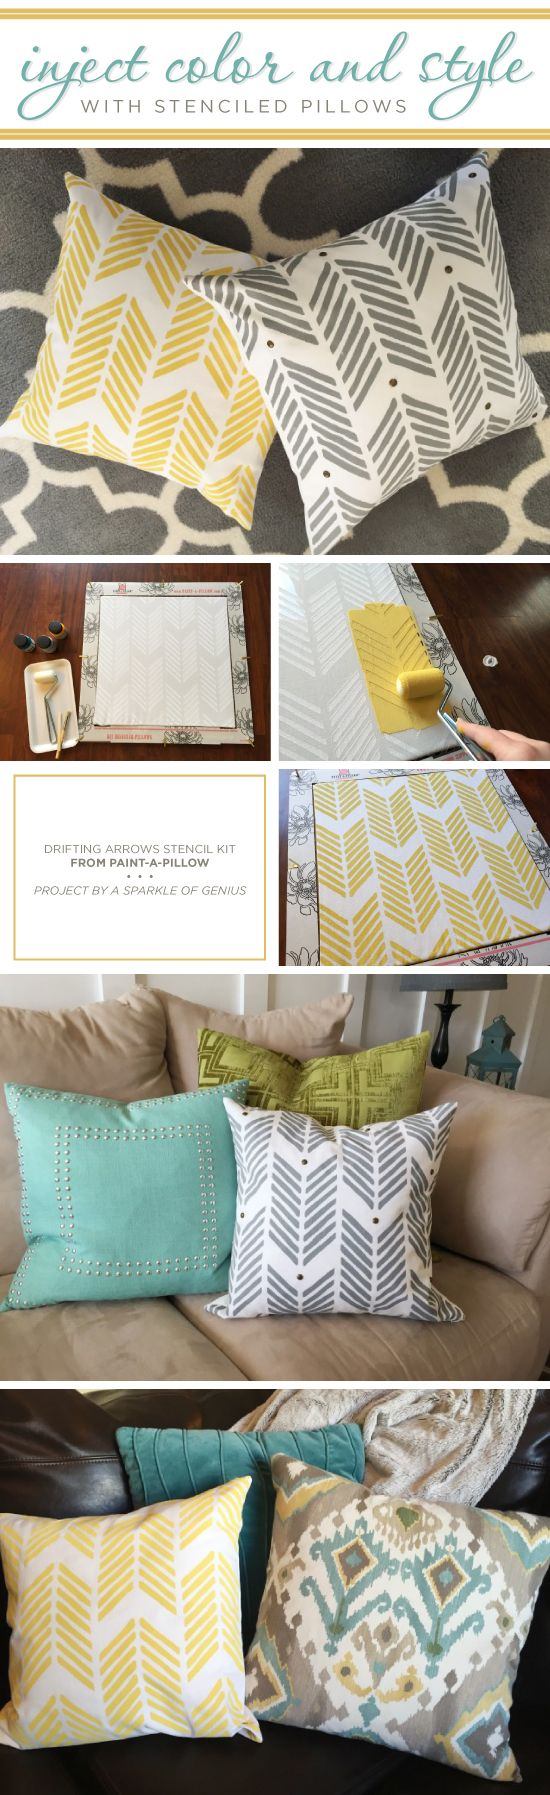 Cutting Edge Stencils shares how to DIY accent pillows using the Drifting Arrows Paint-A-Pillow kit. http://paintapillow.com/index.php/drifting-arrows-paint-a-pillow-kit.html